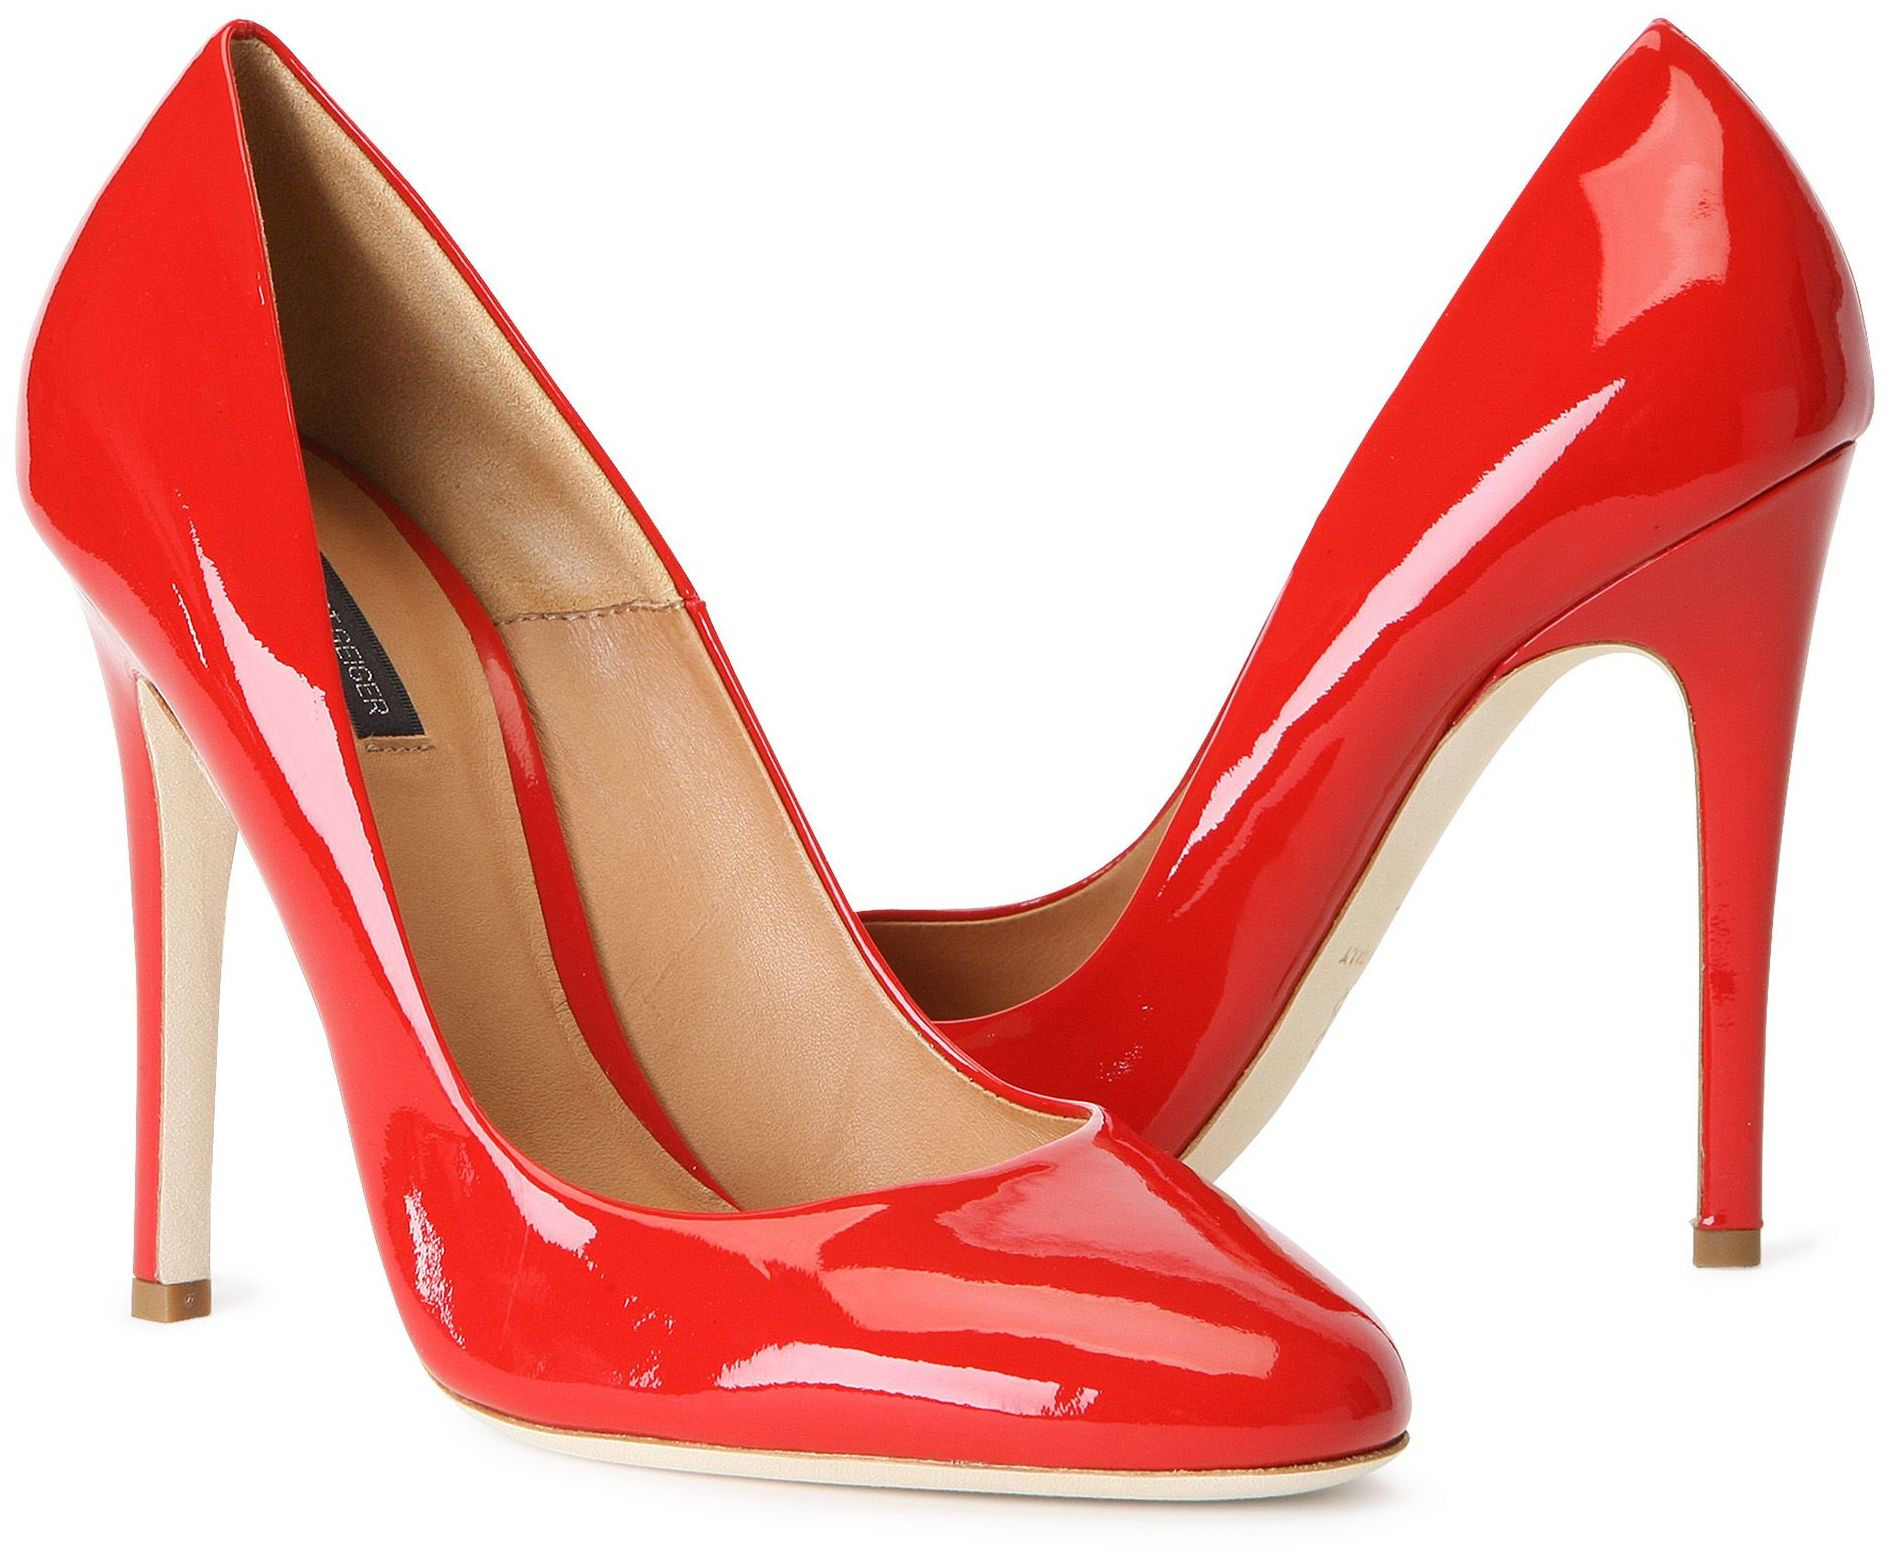 http://www.blackgate.net/blog/wp-content/uploads/2011/05/shoes_kurt-geiger-red-eden-stiletto-leather-product-1.jpeg